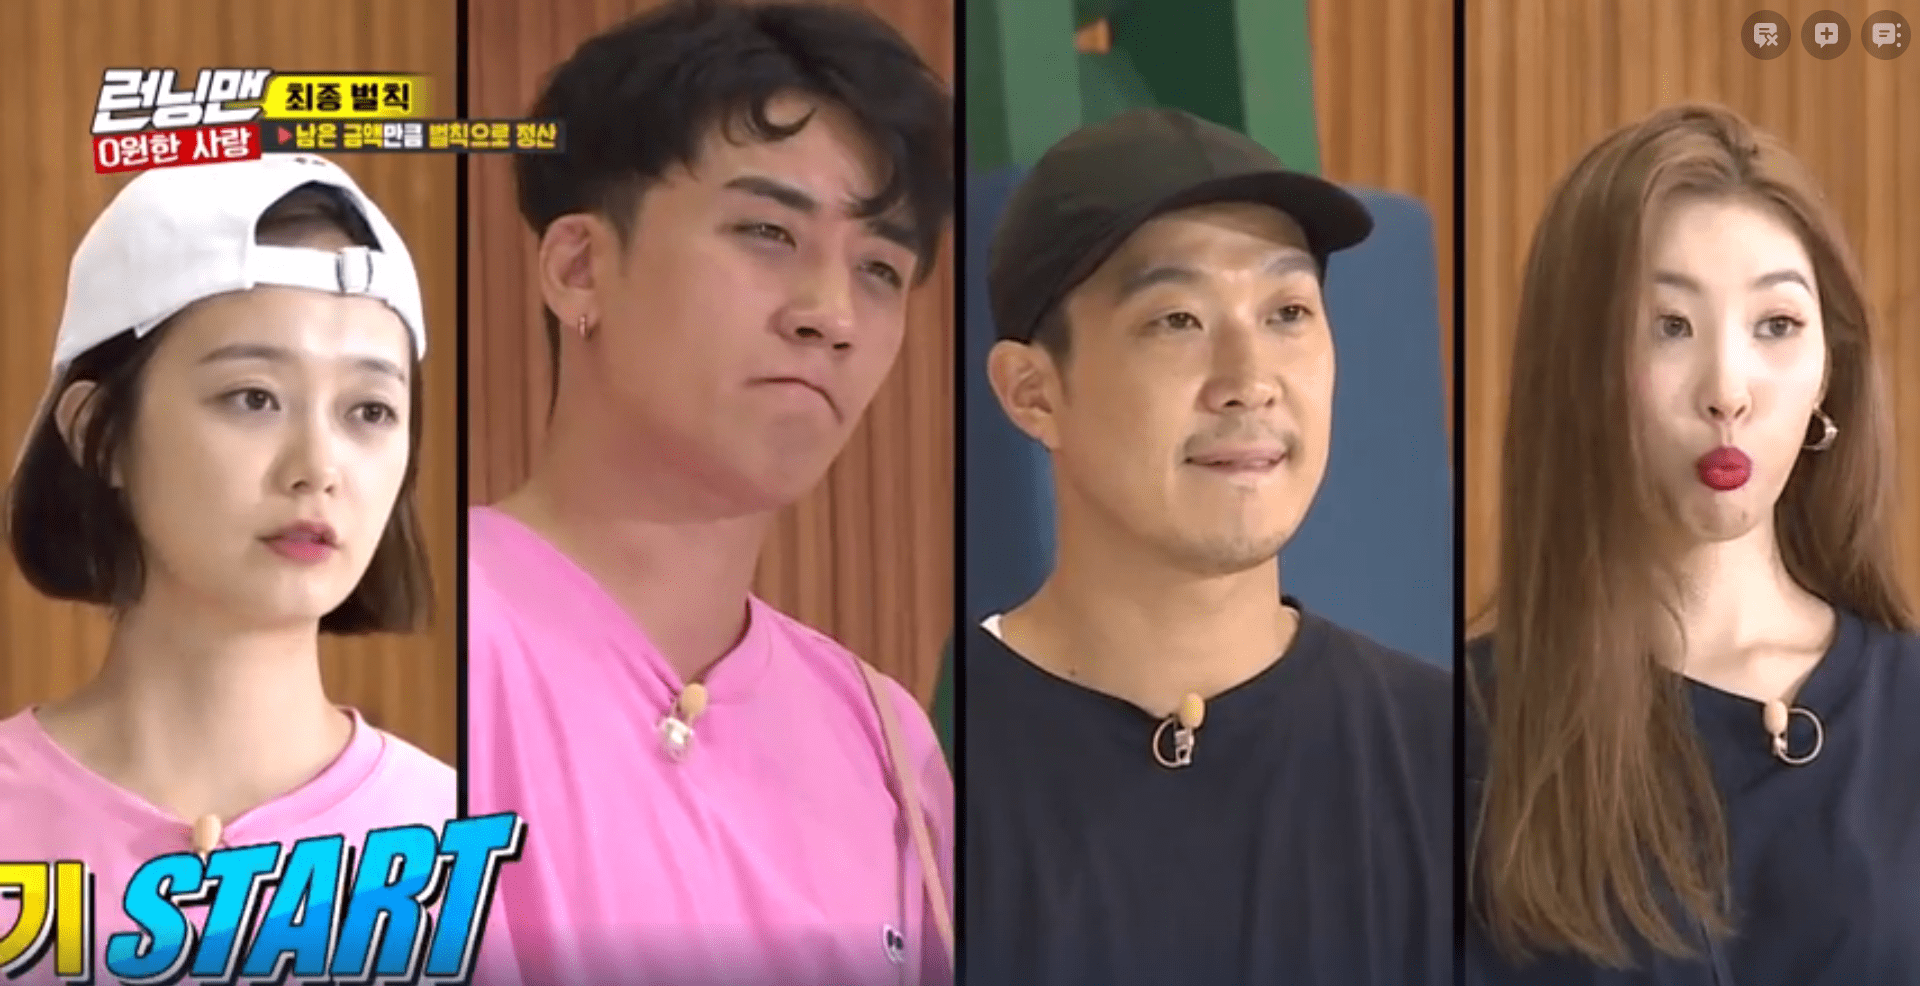 Dramabeans running Man Attains High Ratings With Hilarious Starstudded Episode What The Kpop Running Man